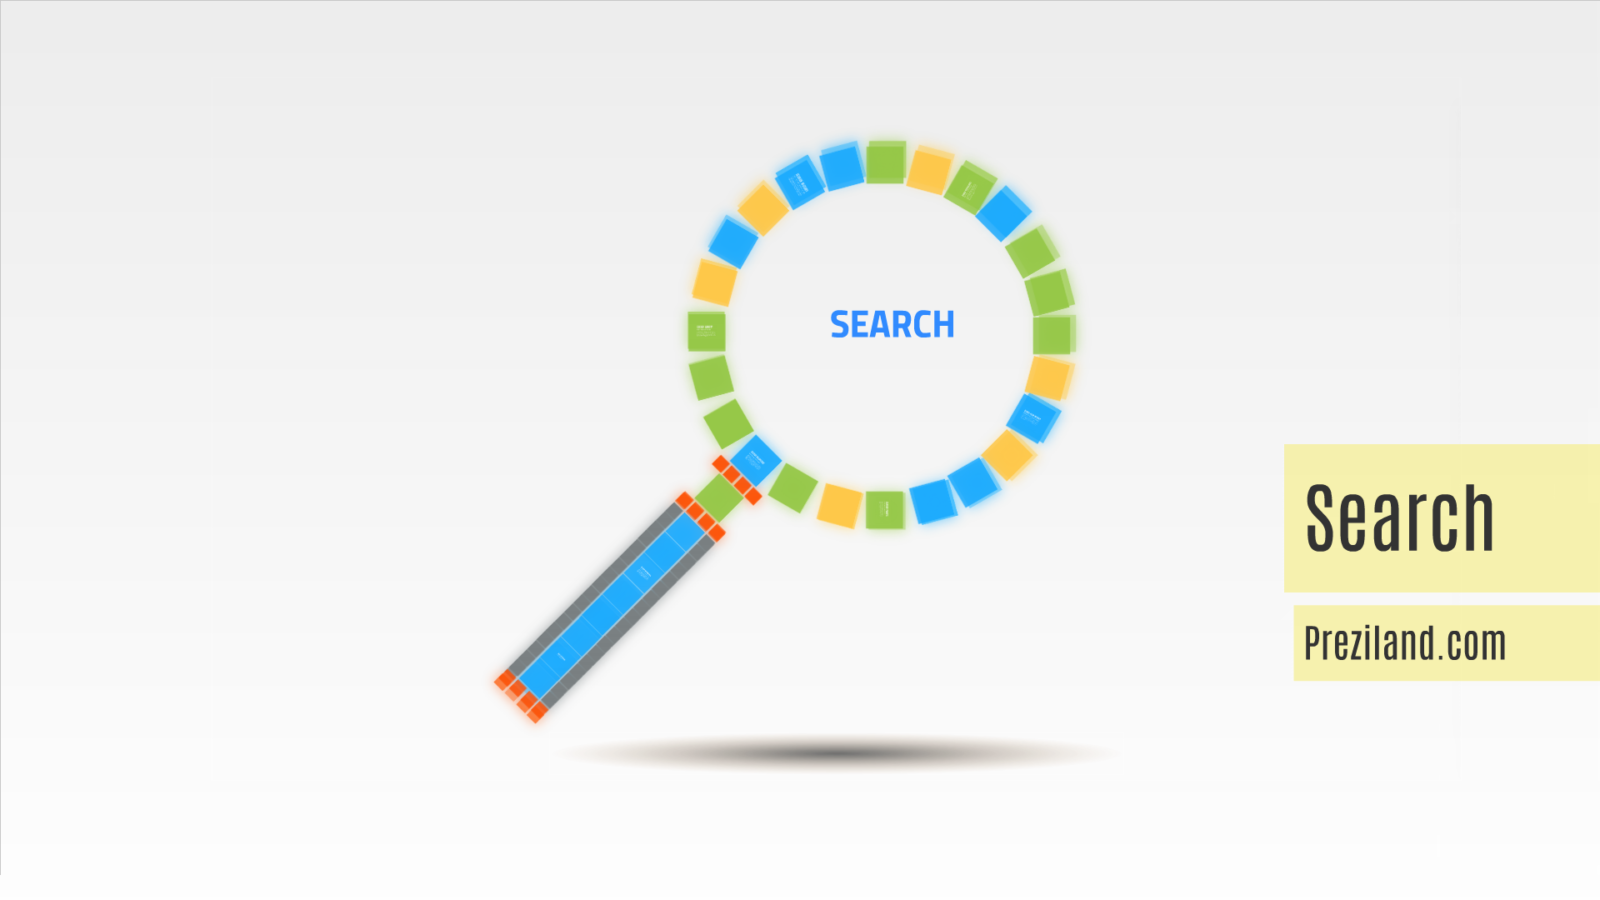 Search Prezi template video